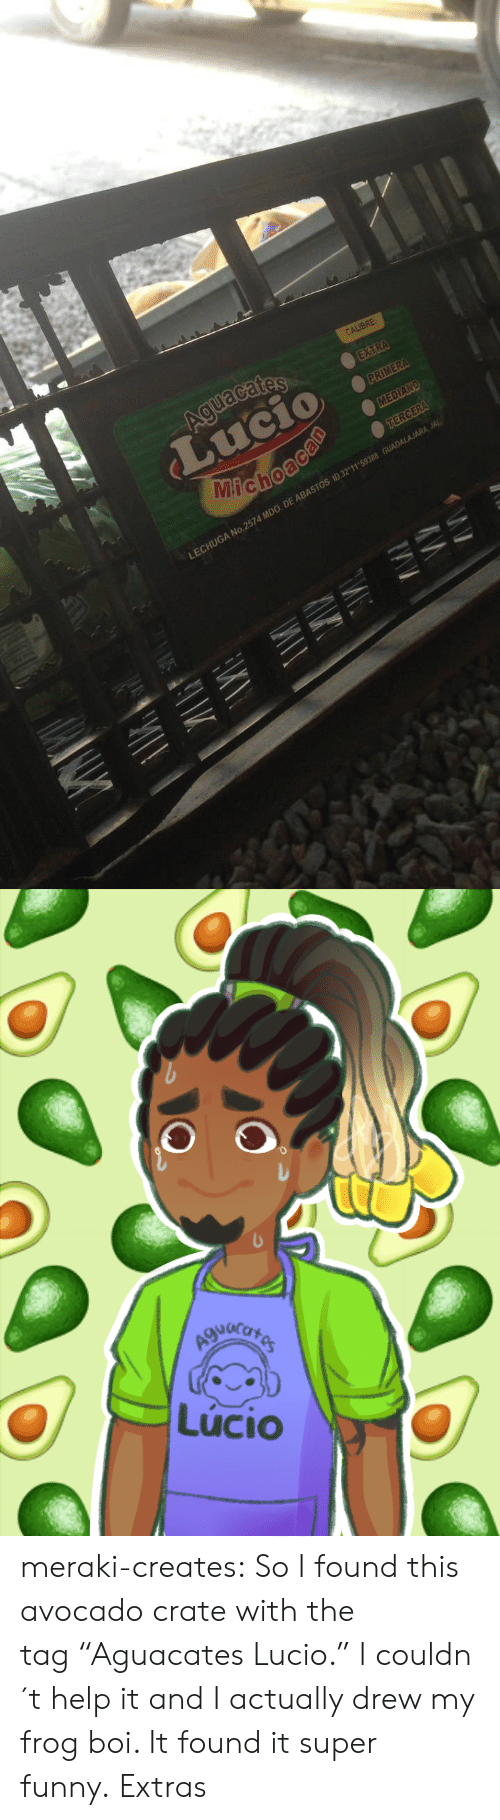 "Crate: A No 2574 MDO DE ABASTOS 10 32 11 59388   Lúcio meraki-creates:  So I found this avocado crate with the tag ""Aguacates Lucio."" I couldn´t help it and I actually drew my frog boi. It found it super funny. Extras"